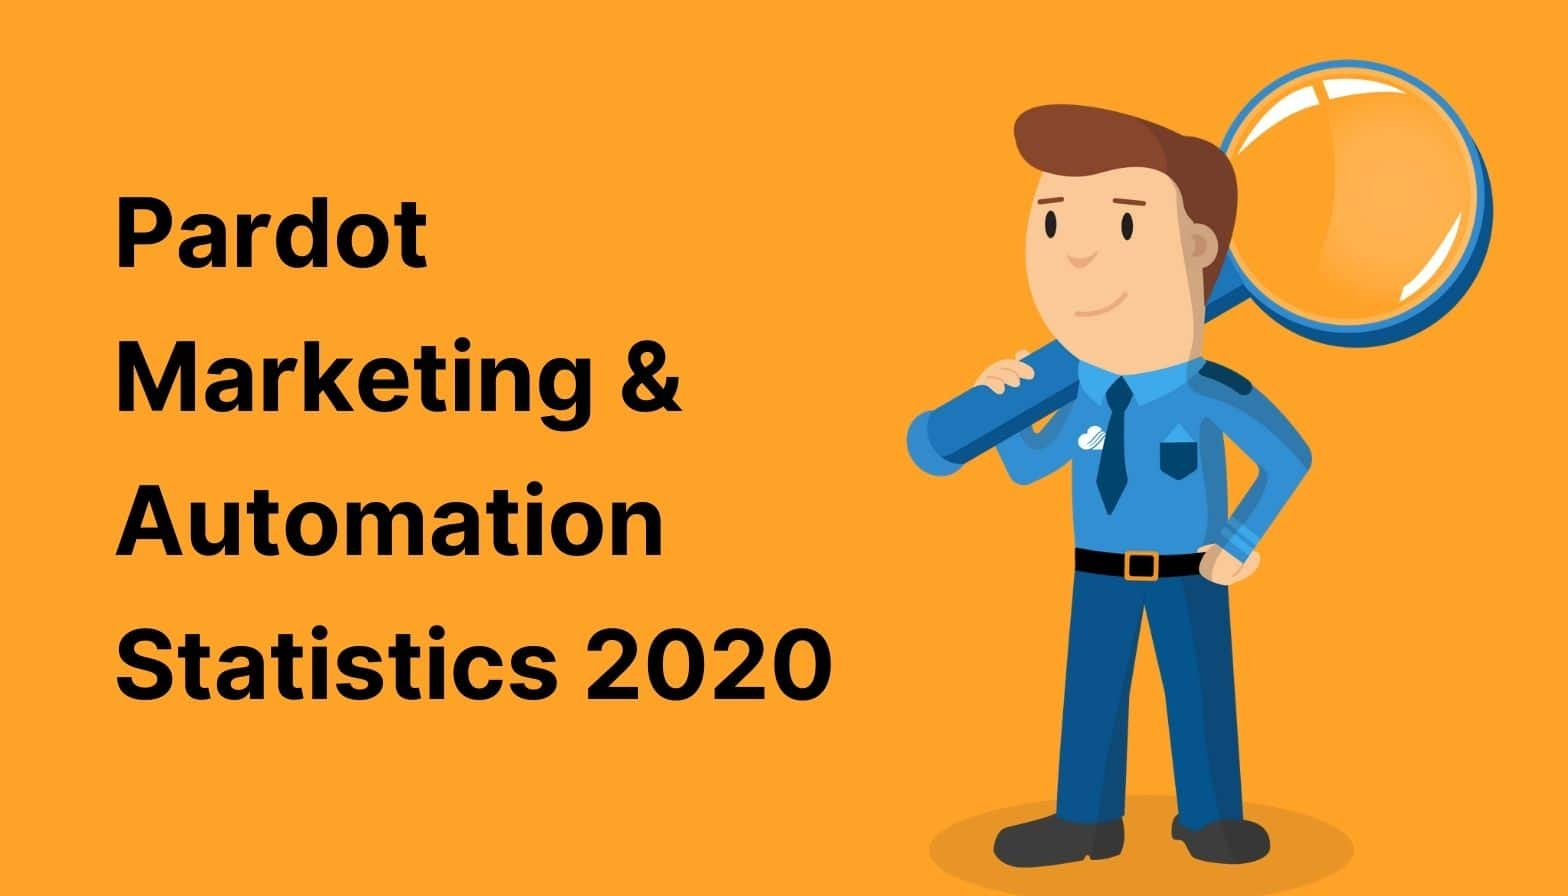 Pardot Marketing & Automation Statistics 2019